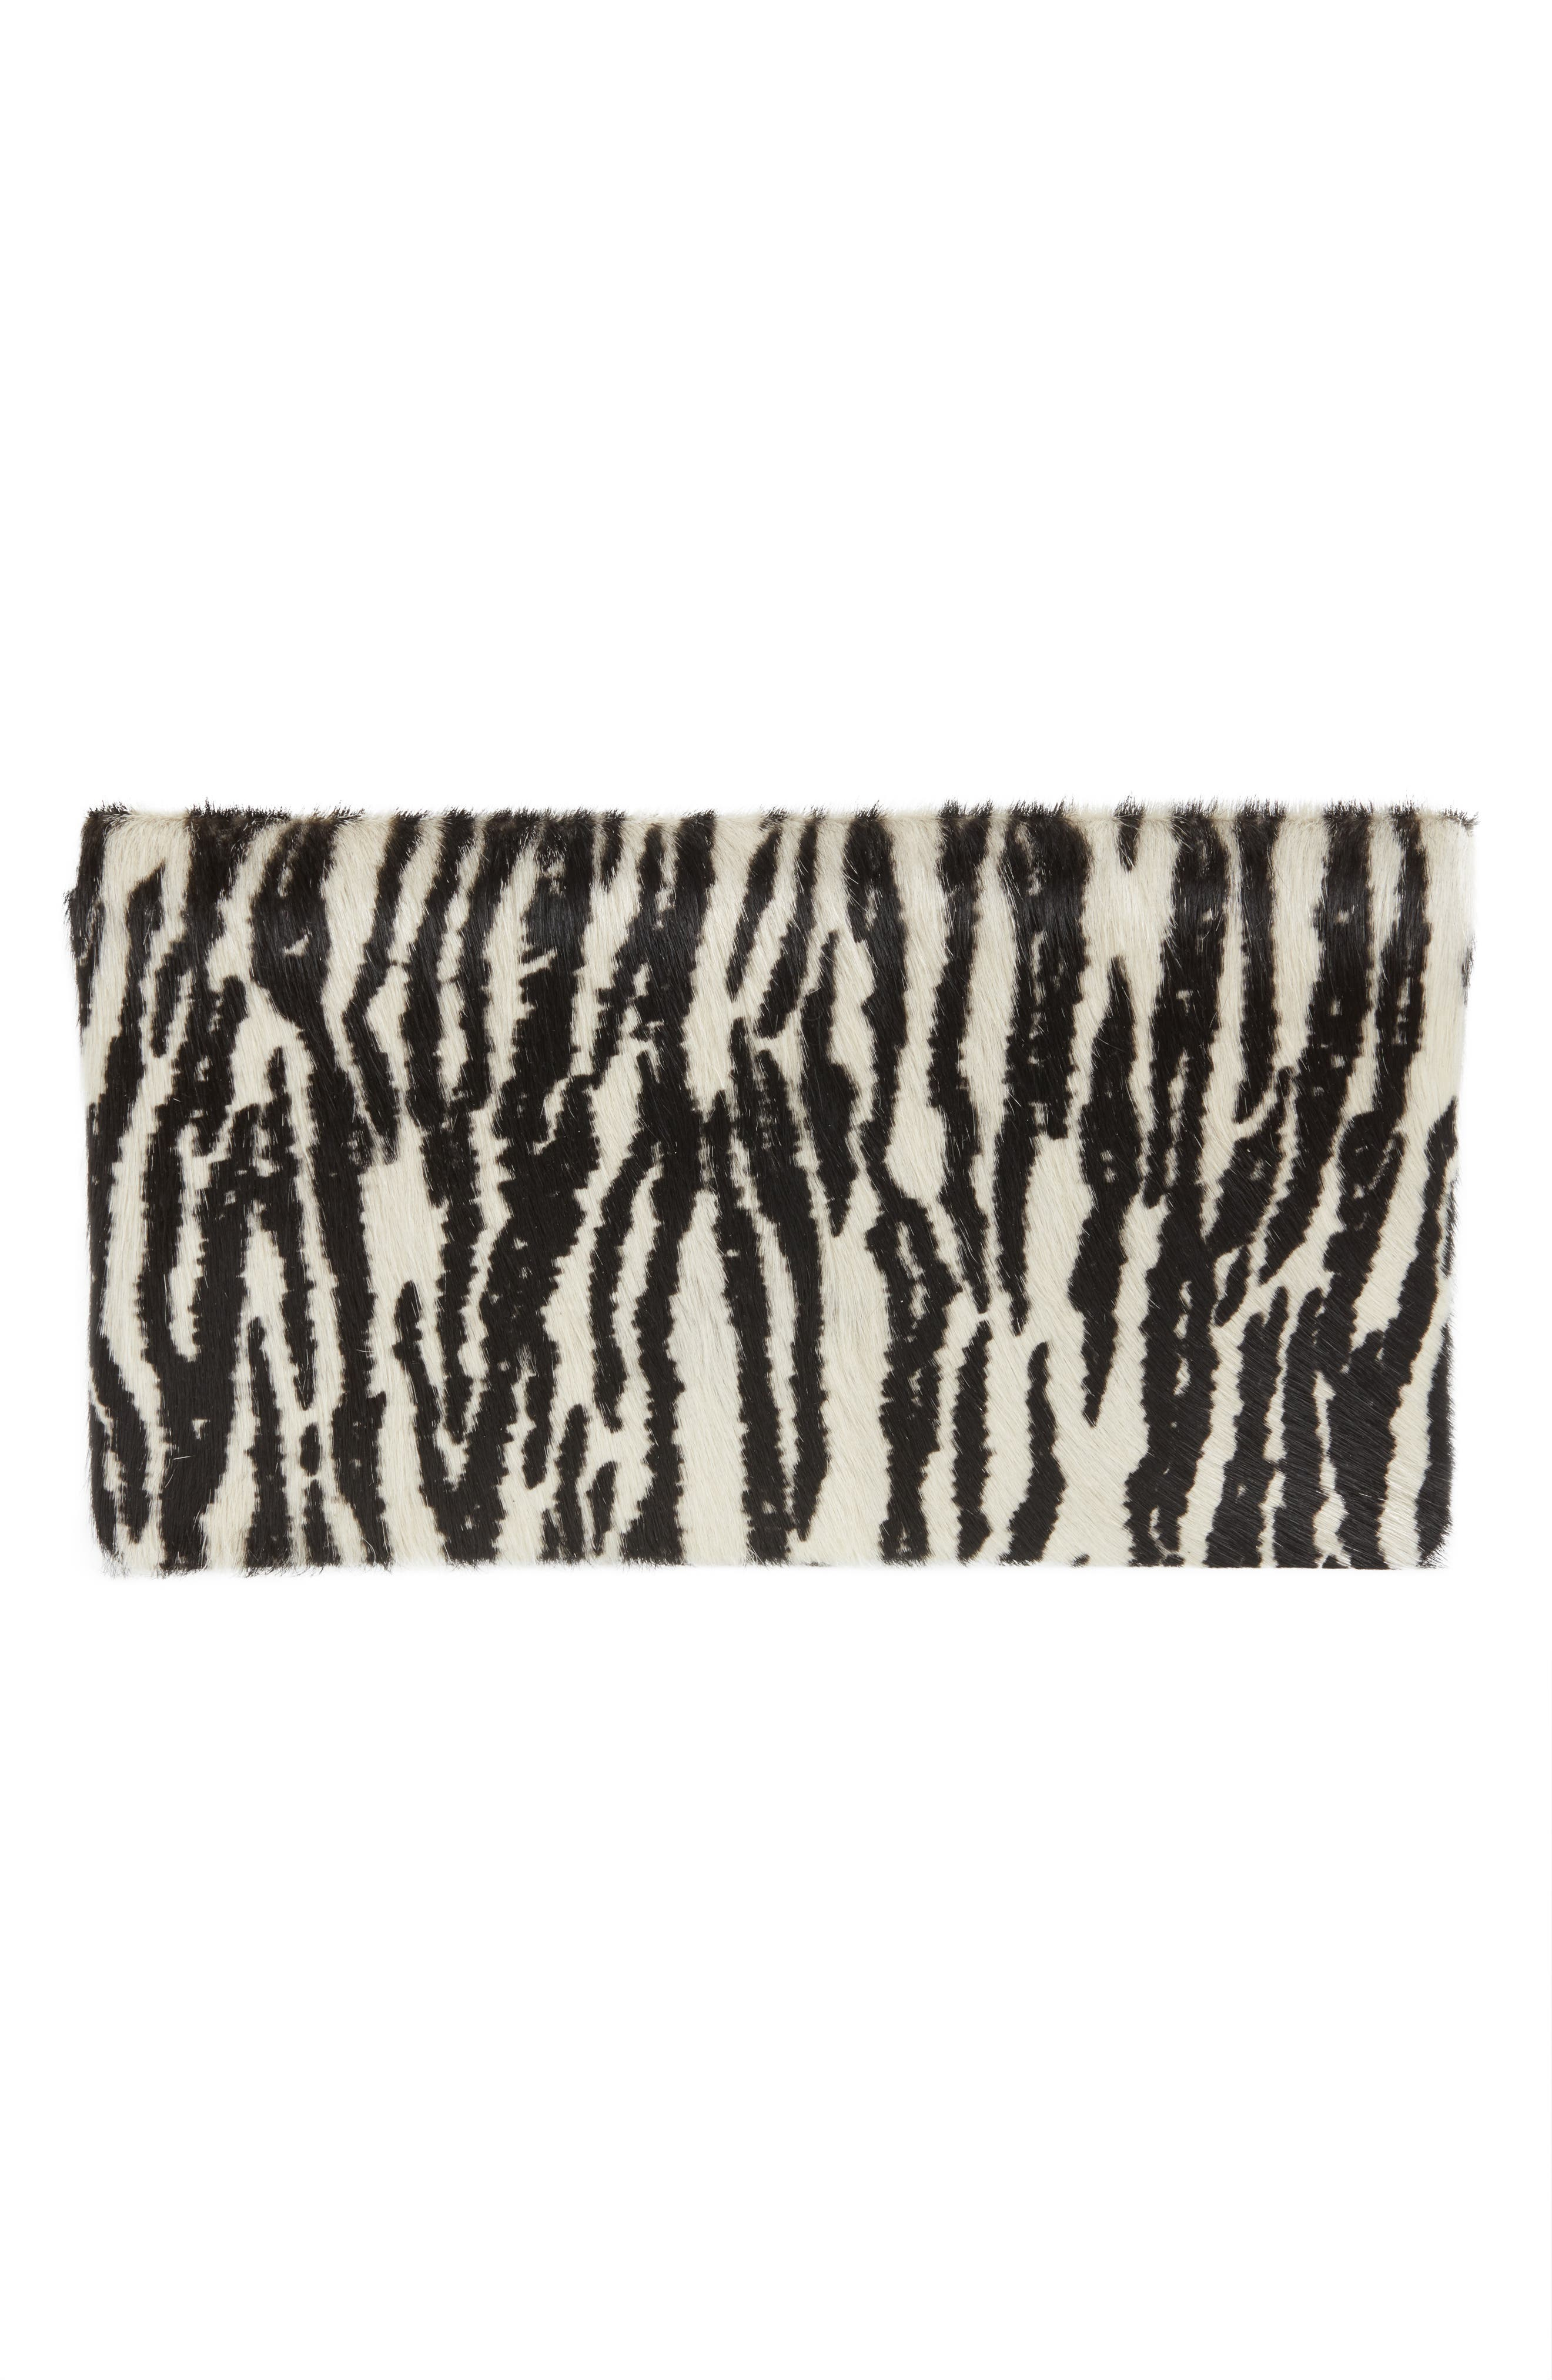 Zebra Print Genuine Calf Hair Foldover Clutch,                             Alternate thumbnail 3, color,                             900